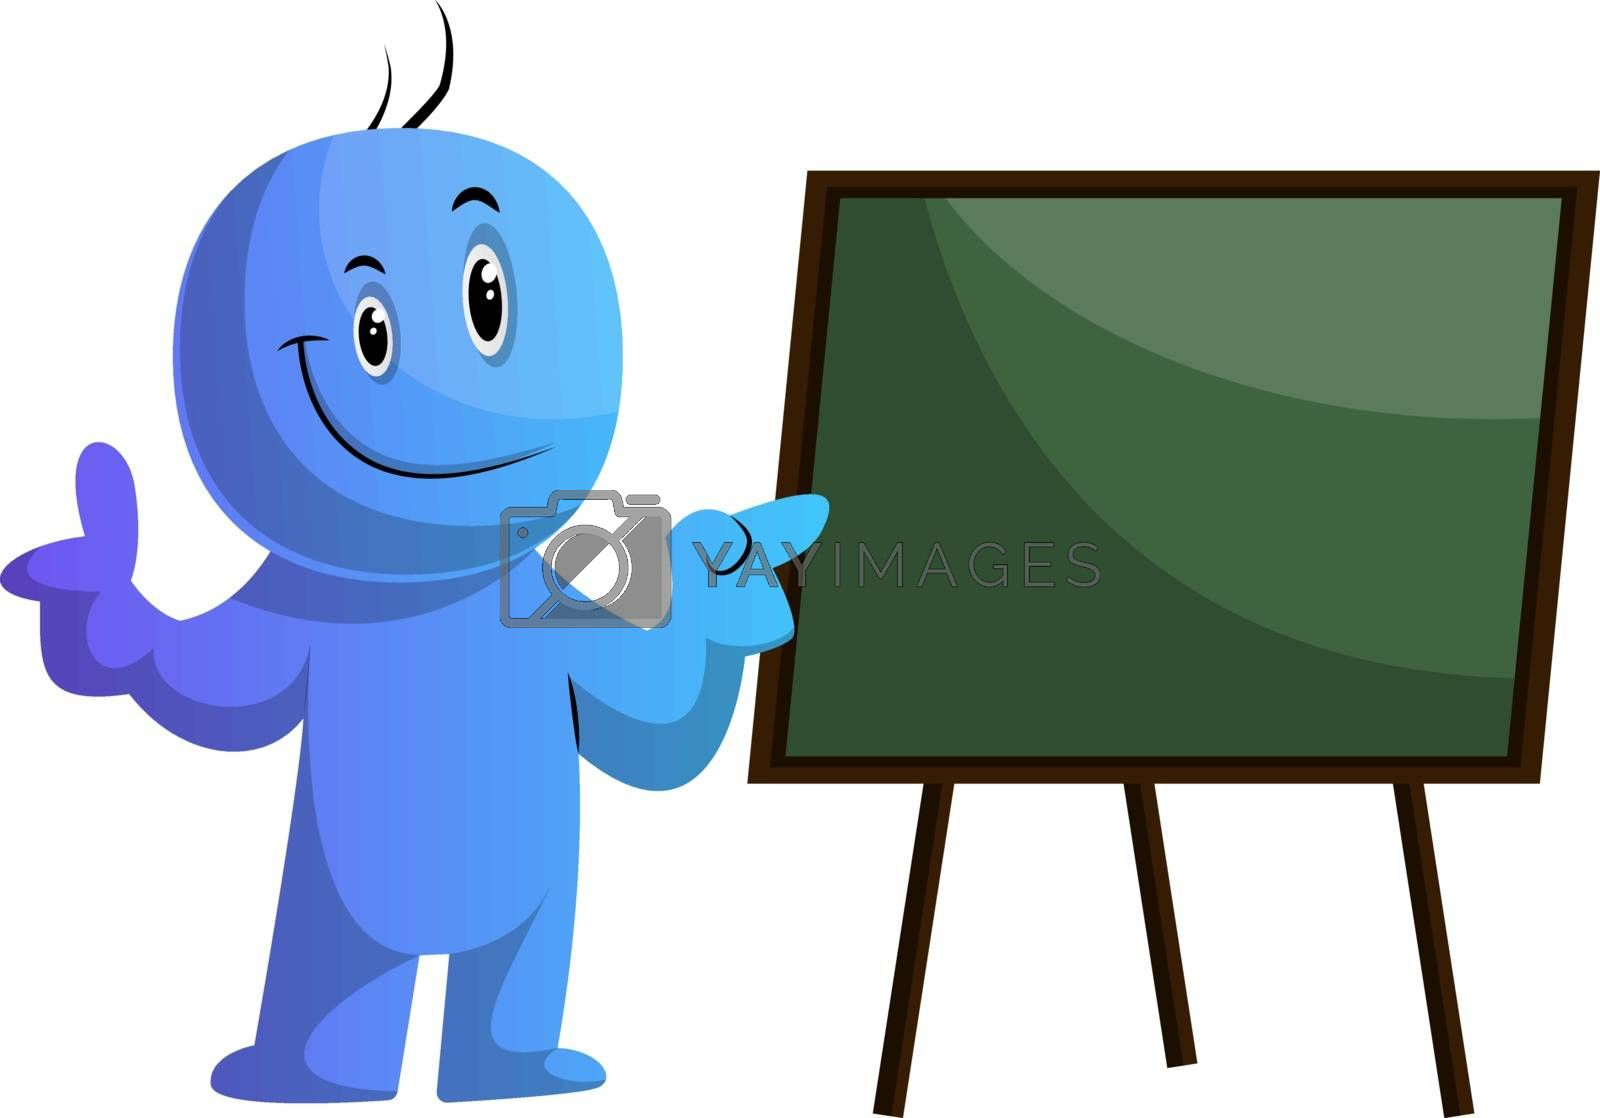 Royalty free image of Blue cartoon caracter and the board illustration vector on white by Morphart